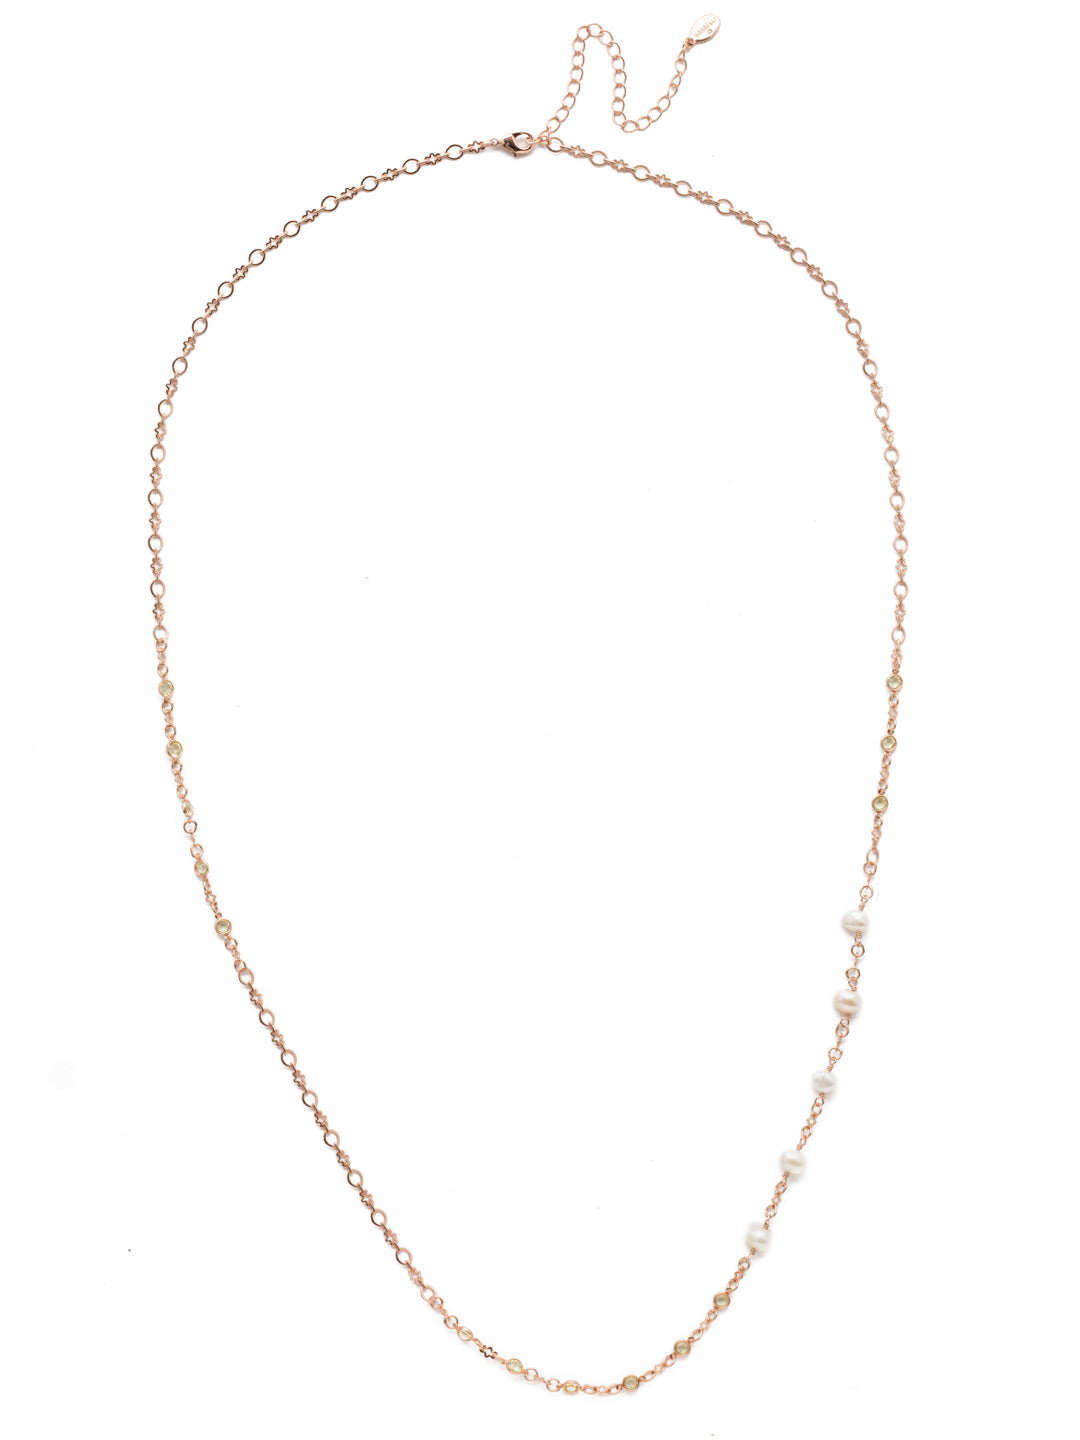 Serena Long Necklace - NEN15RGROG